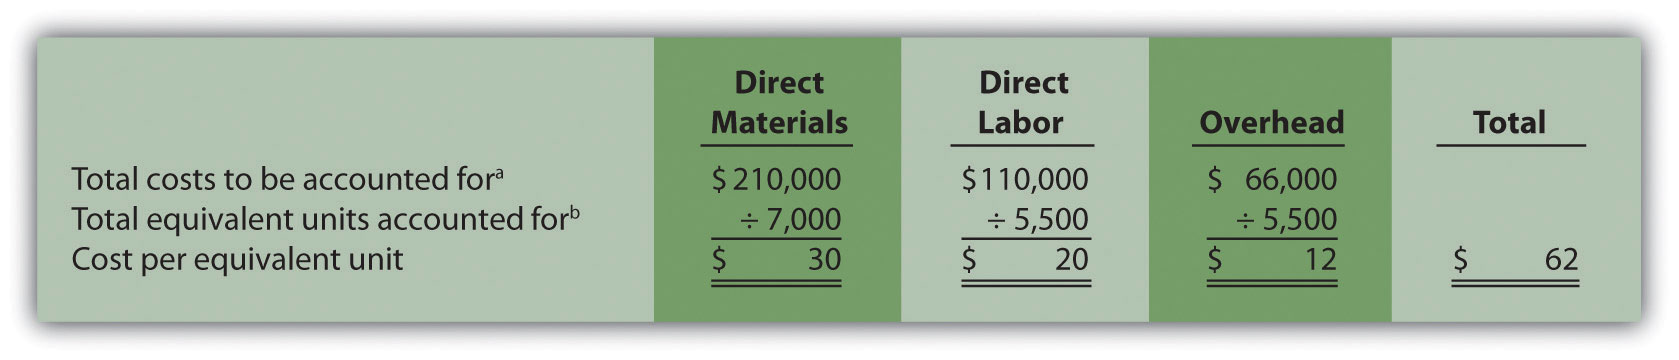 Step 3. Figure 4.6 Calculation of the Cost per Equivalent Unit for Desk Products' Assembly Department: